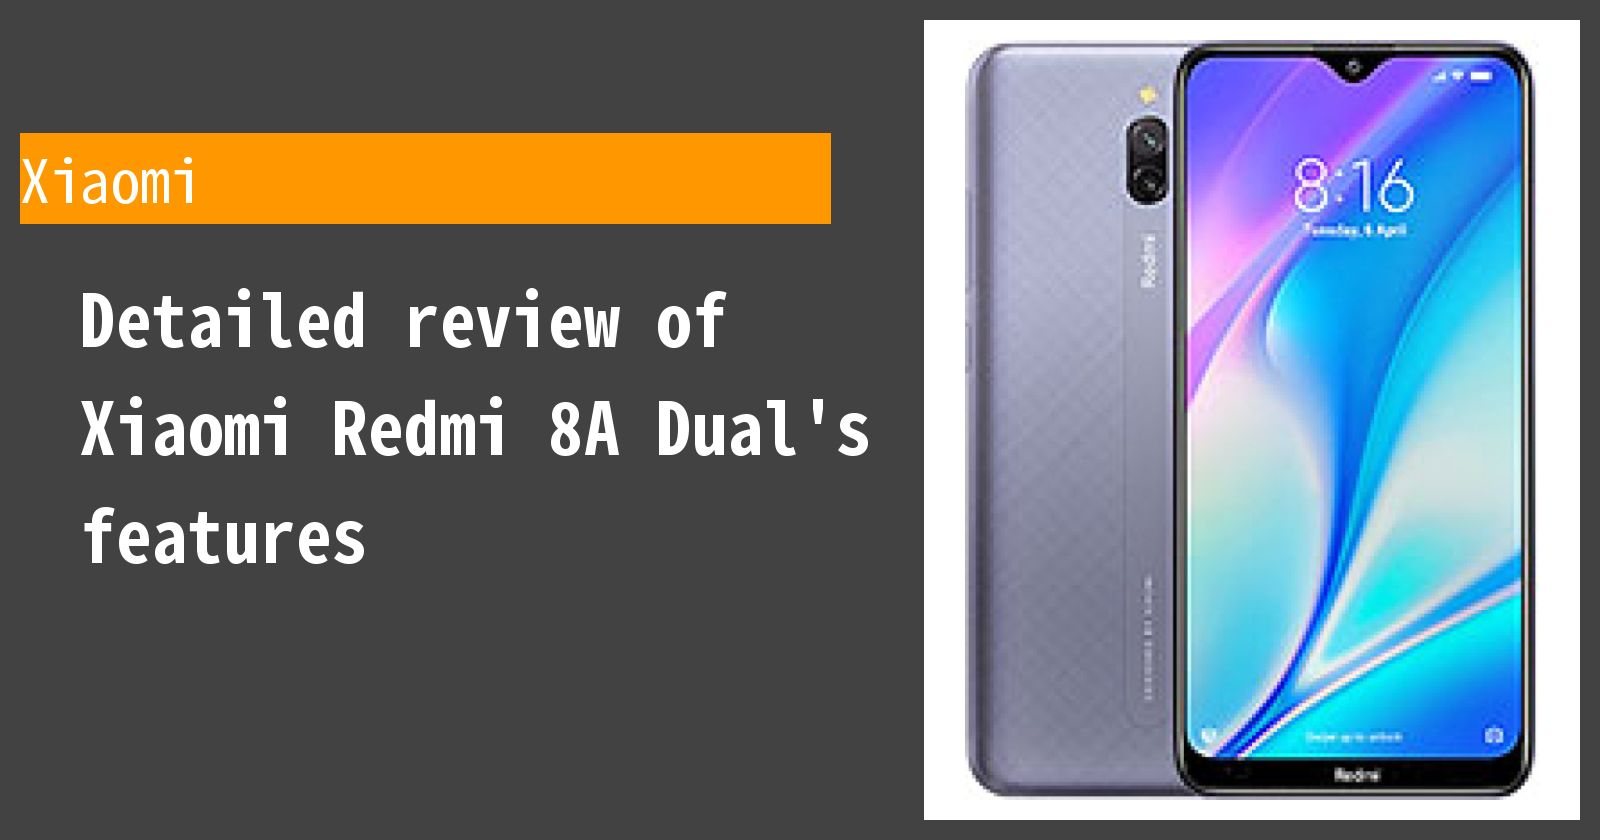 Detailed review of Xiaomi Redmi 8A Dual's features